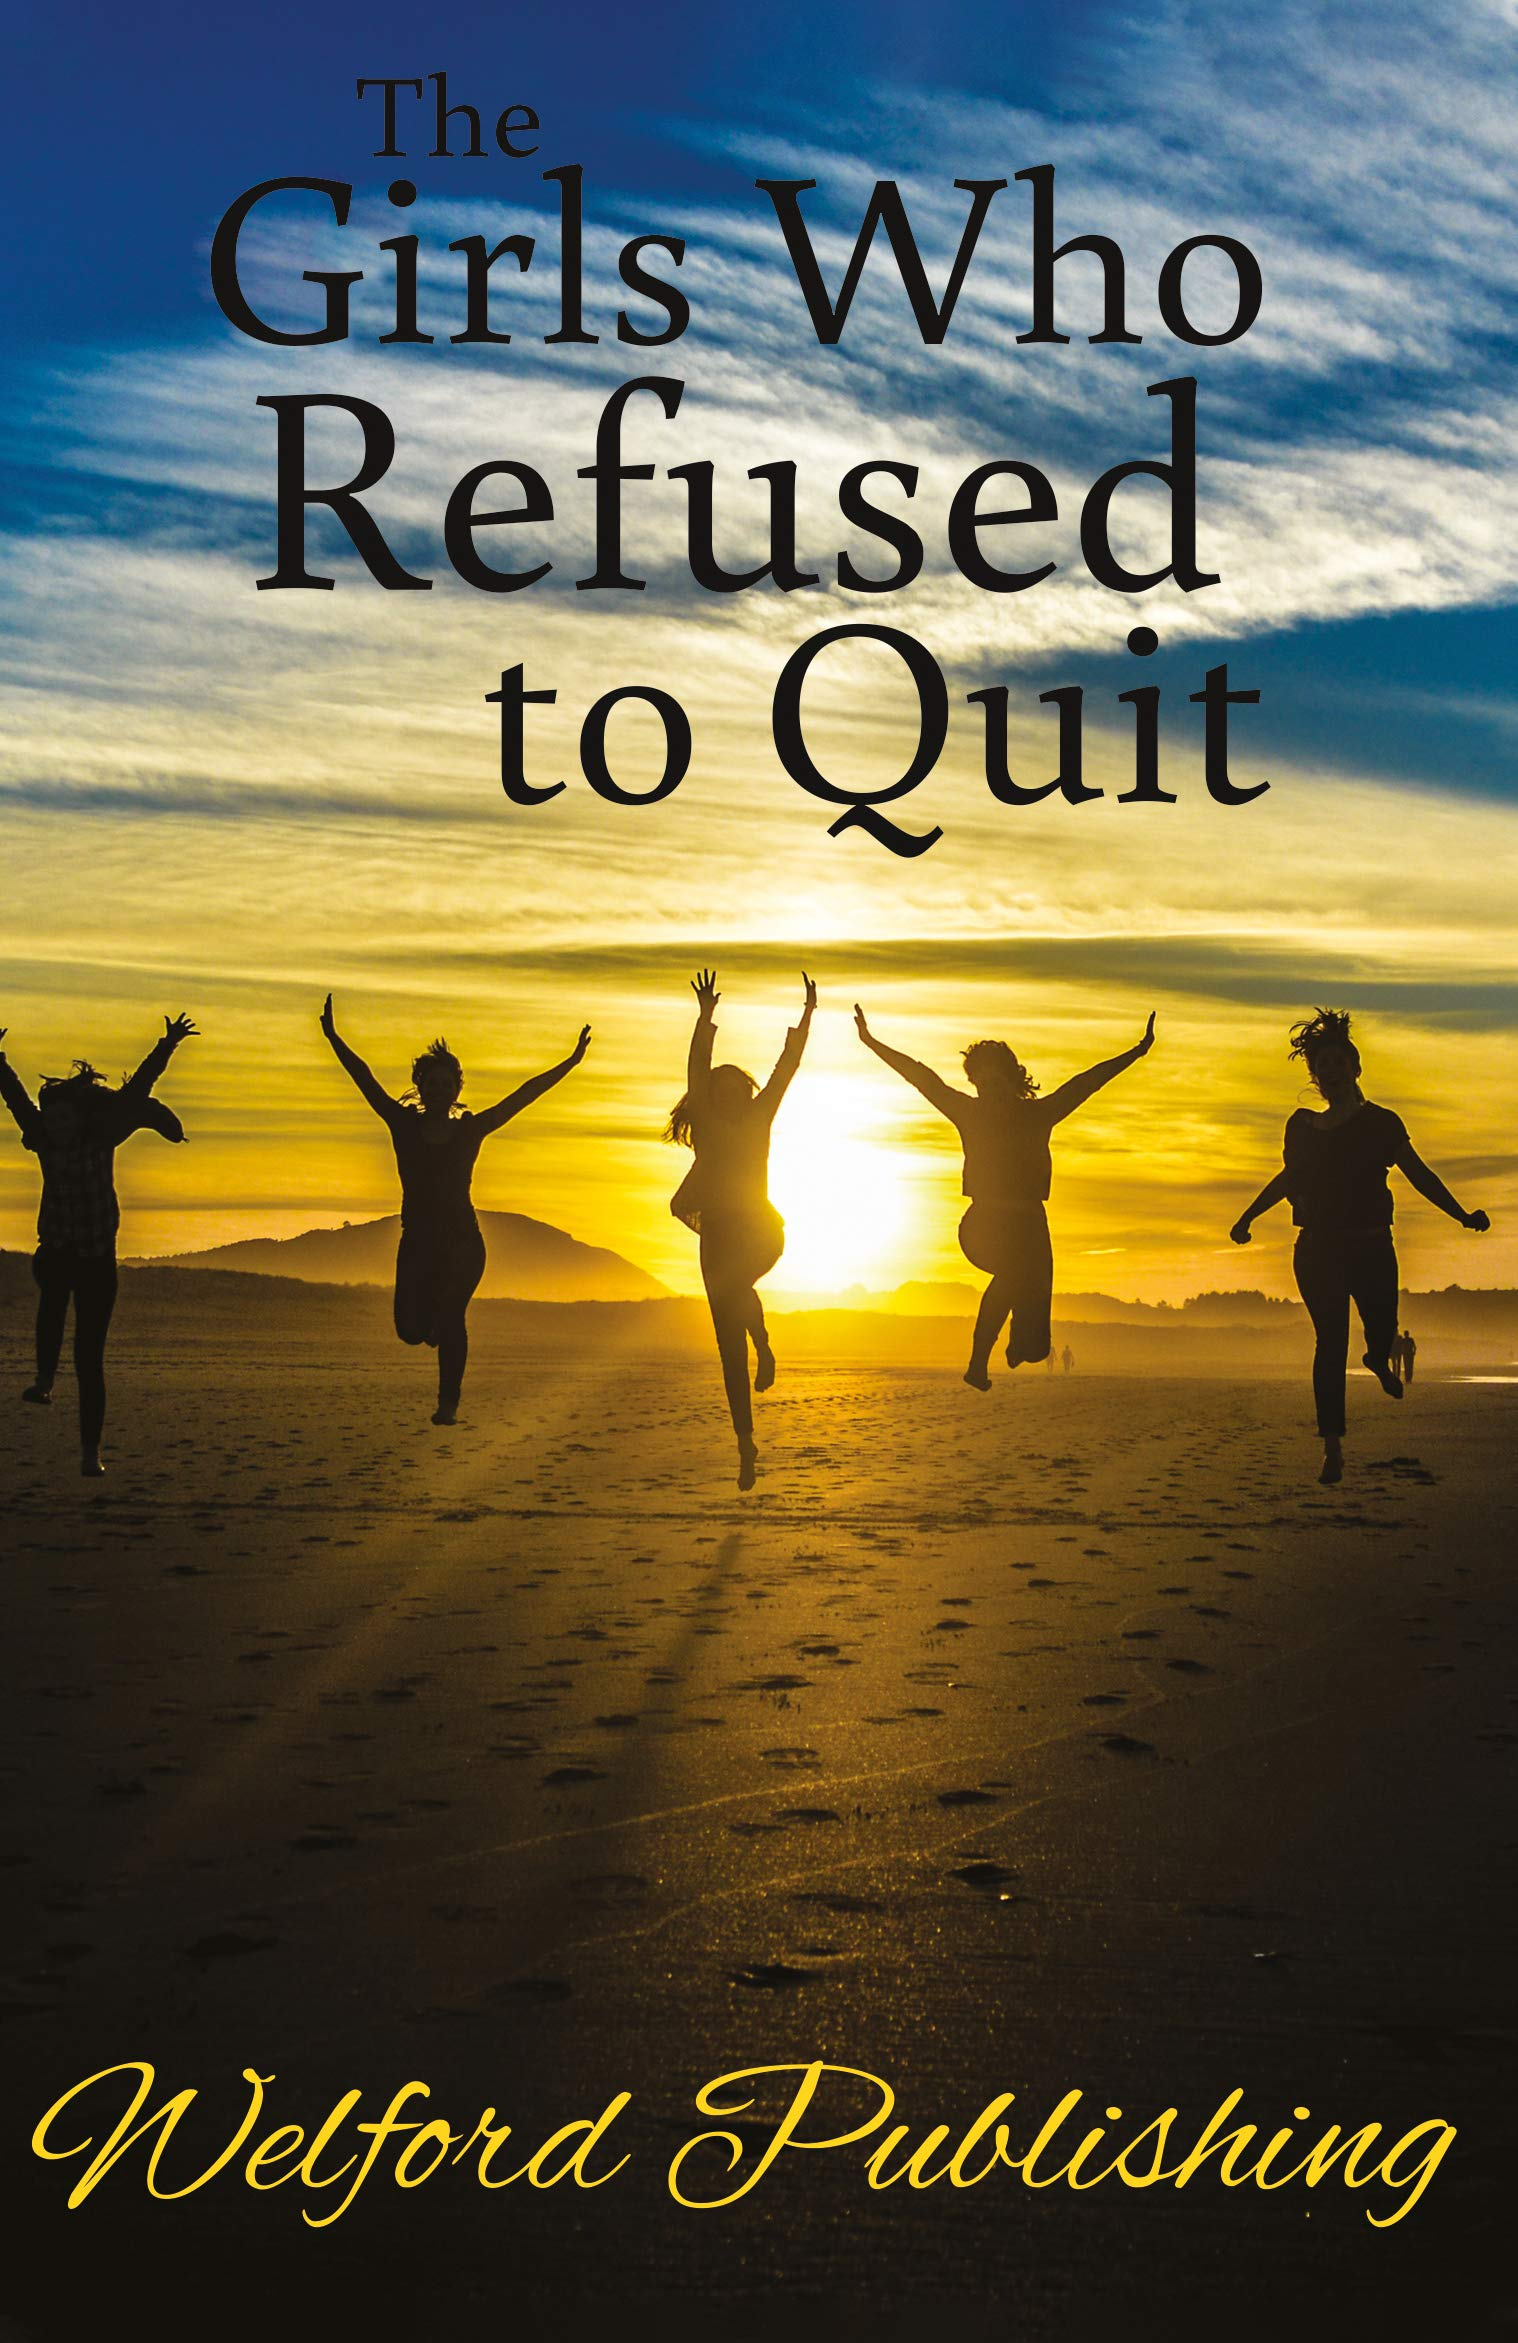 Image OfThe Girls Who Refused To Quit